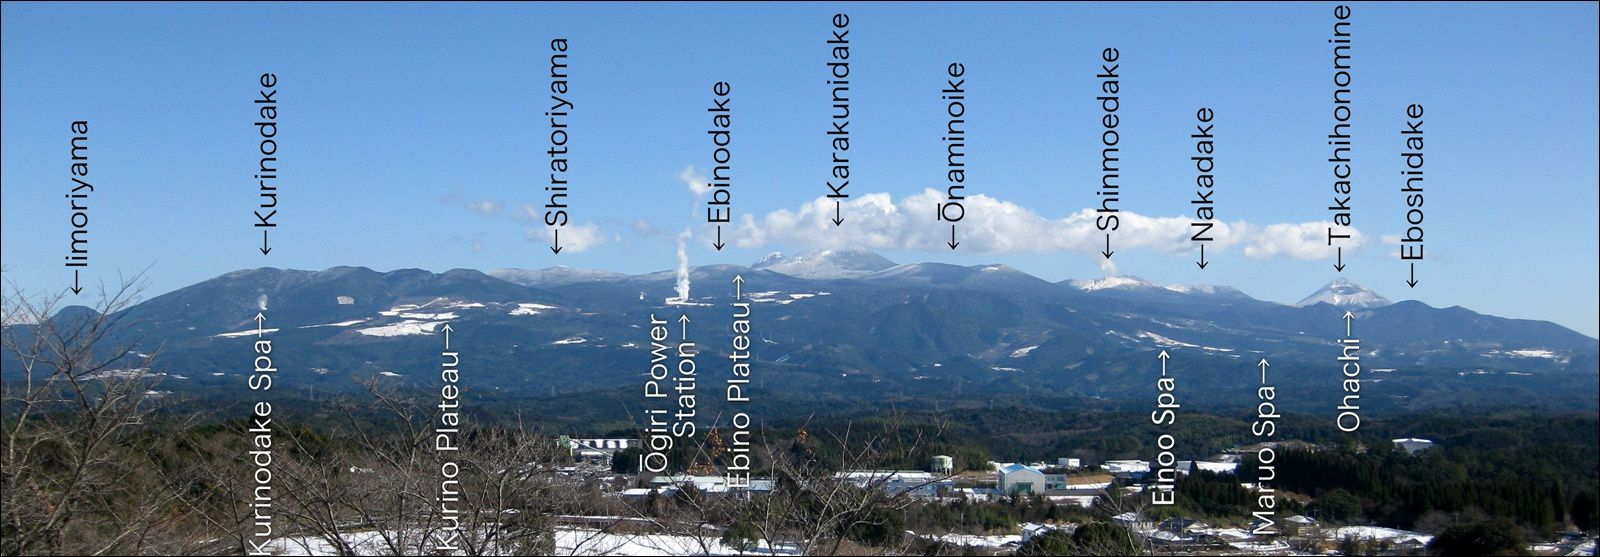 The volcanic complex Kirishima, seen from Maruoka - © Ray_go, wikipedia